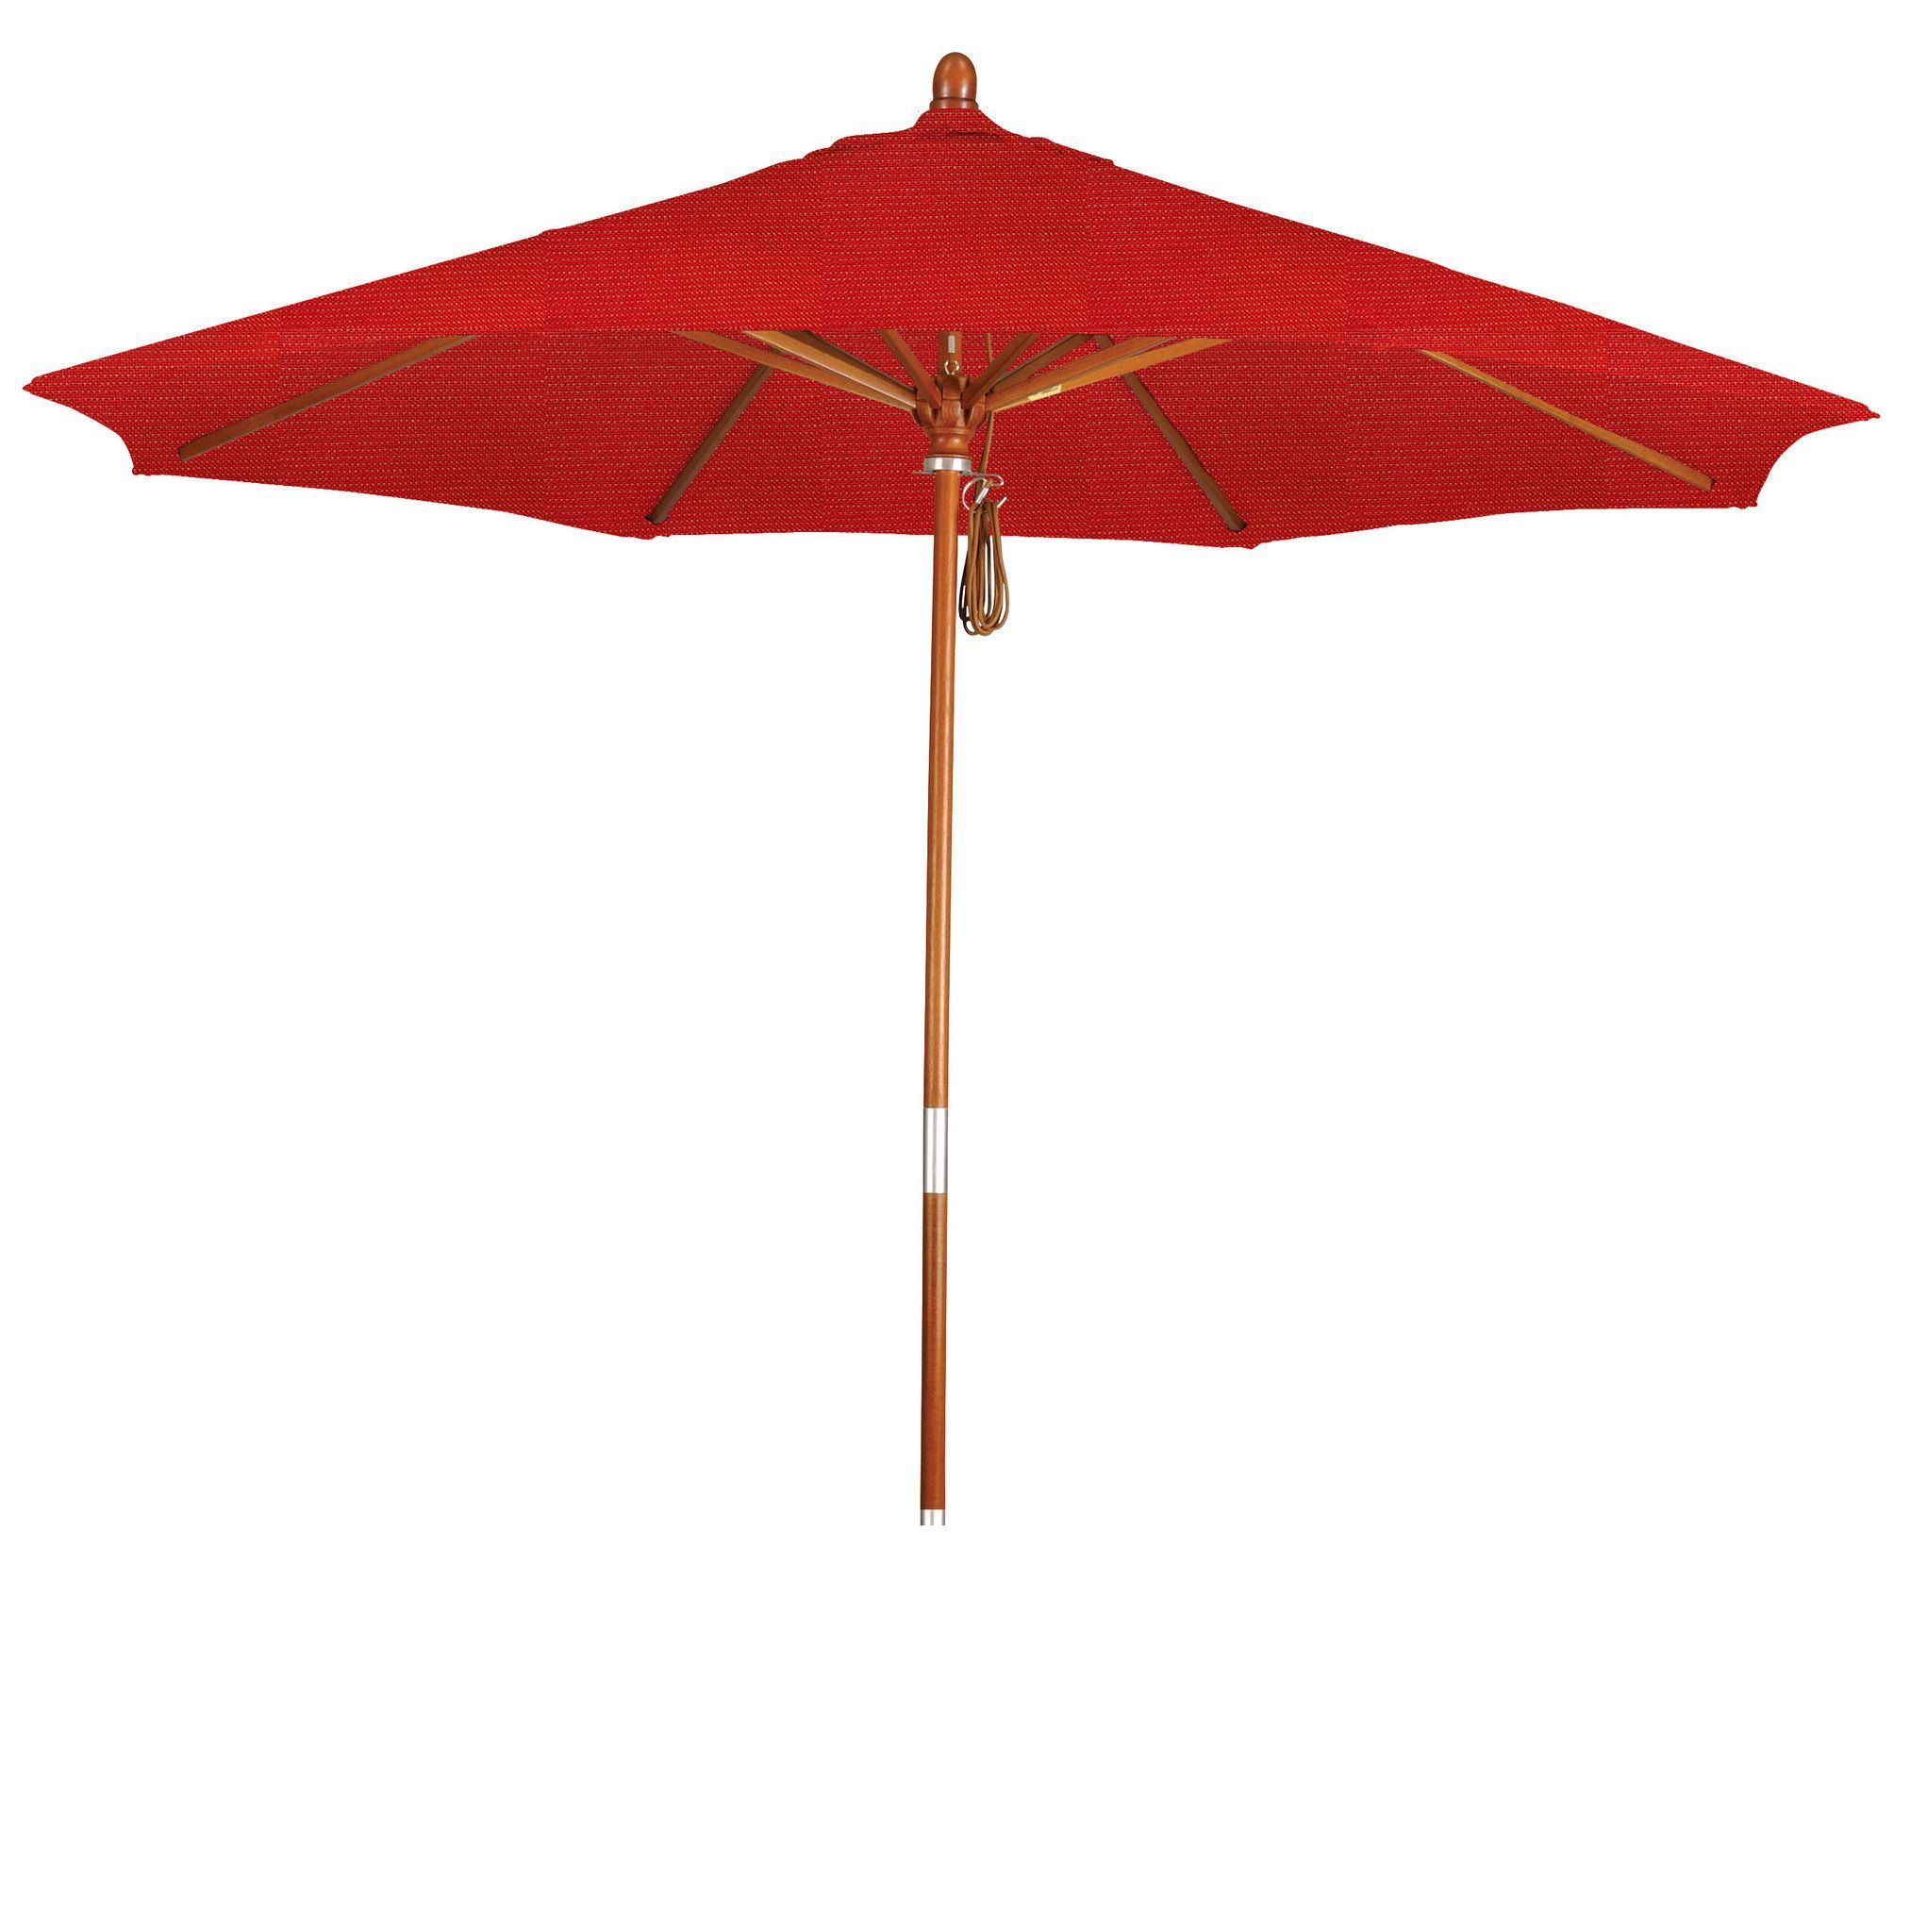 Eclipse Collection 9' Wood Market Umbrella Pulley Open Marenti Wood/Sunbrella/Elan Scarlett